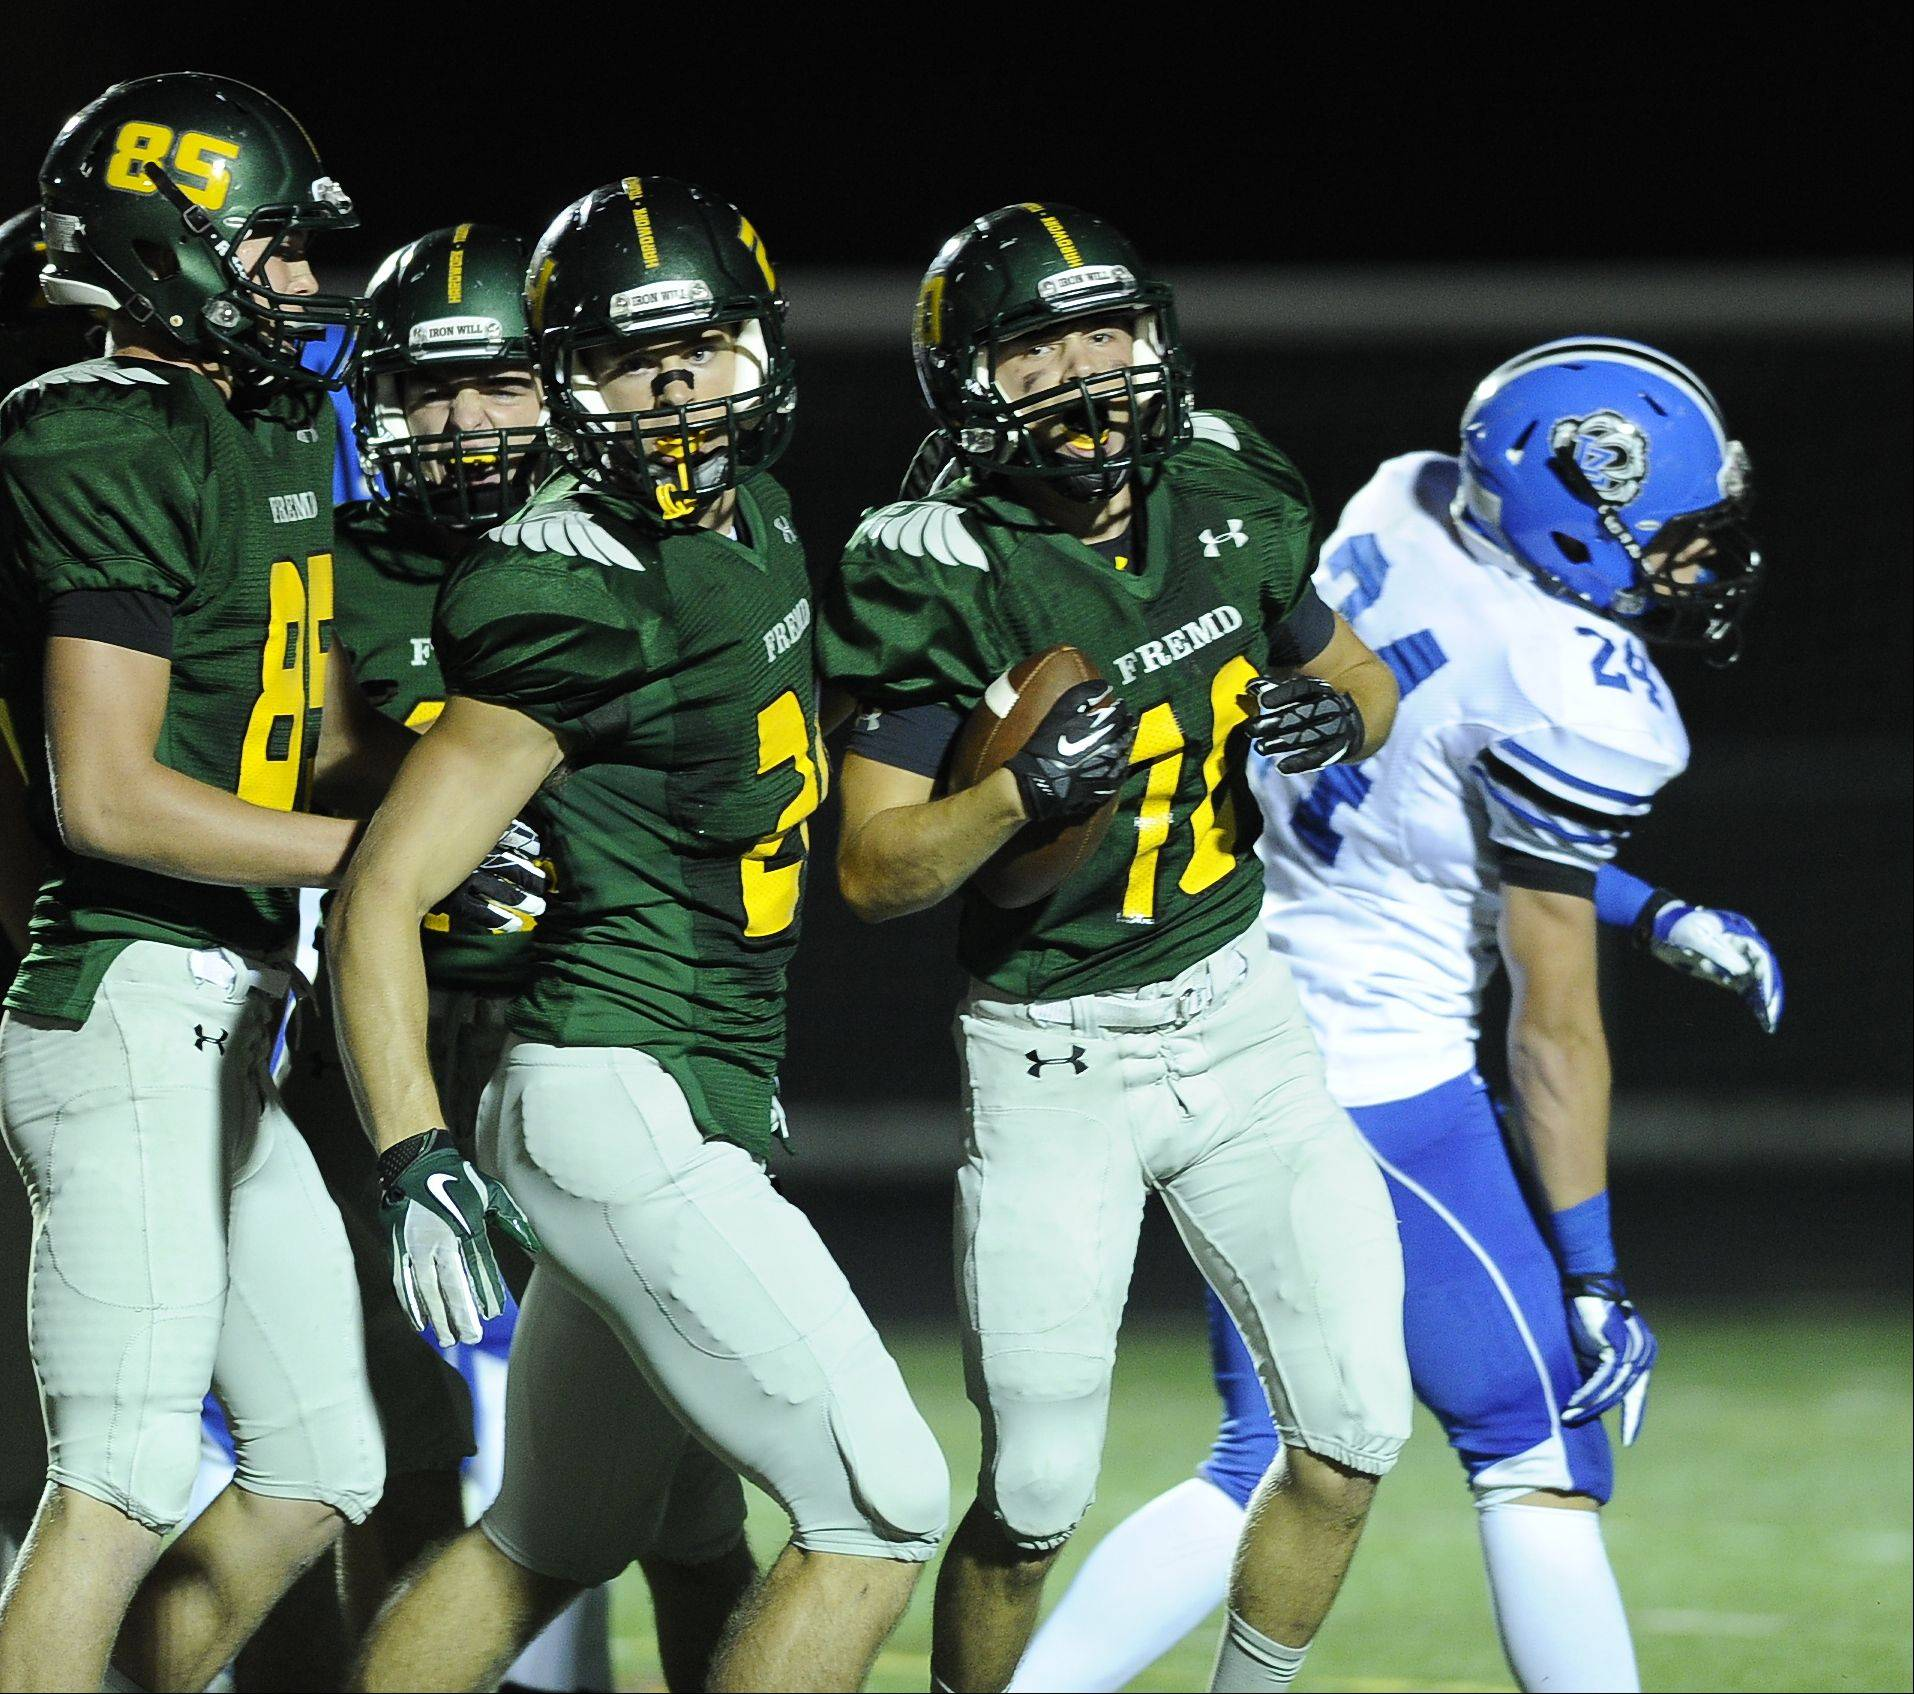 Week -1- Photos from the Fremd vs. Lake Zurich football game on Friday, Aug. 30 in Palatine.